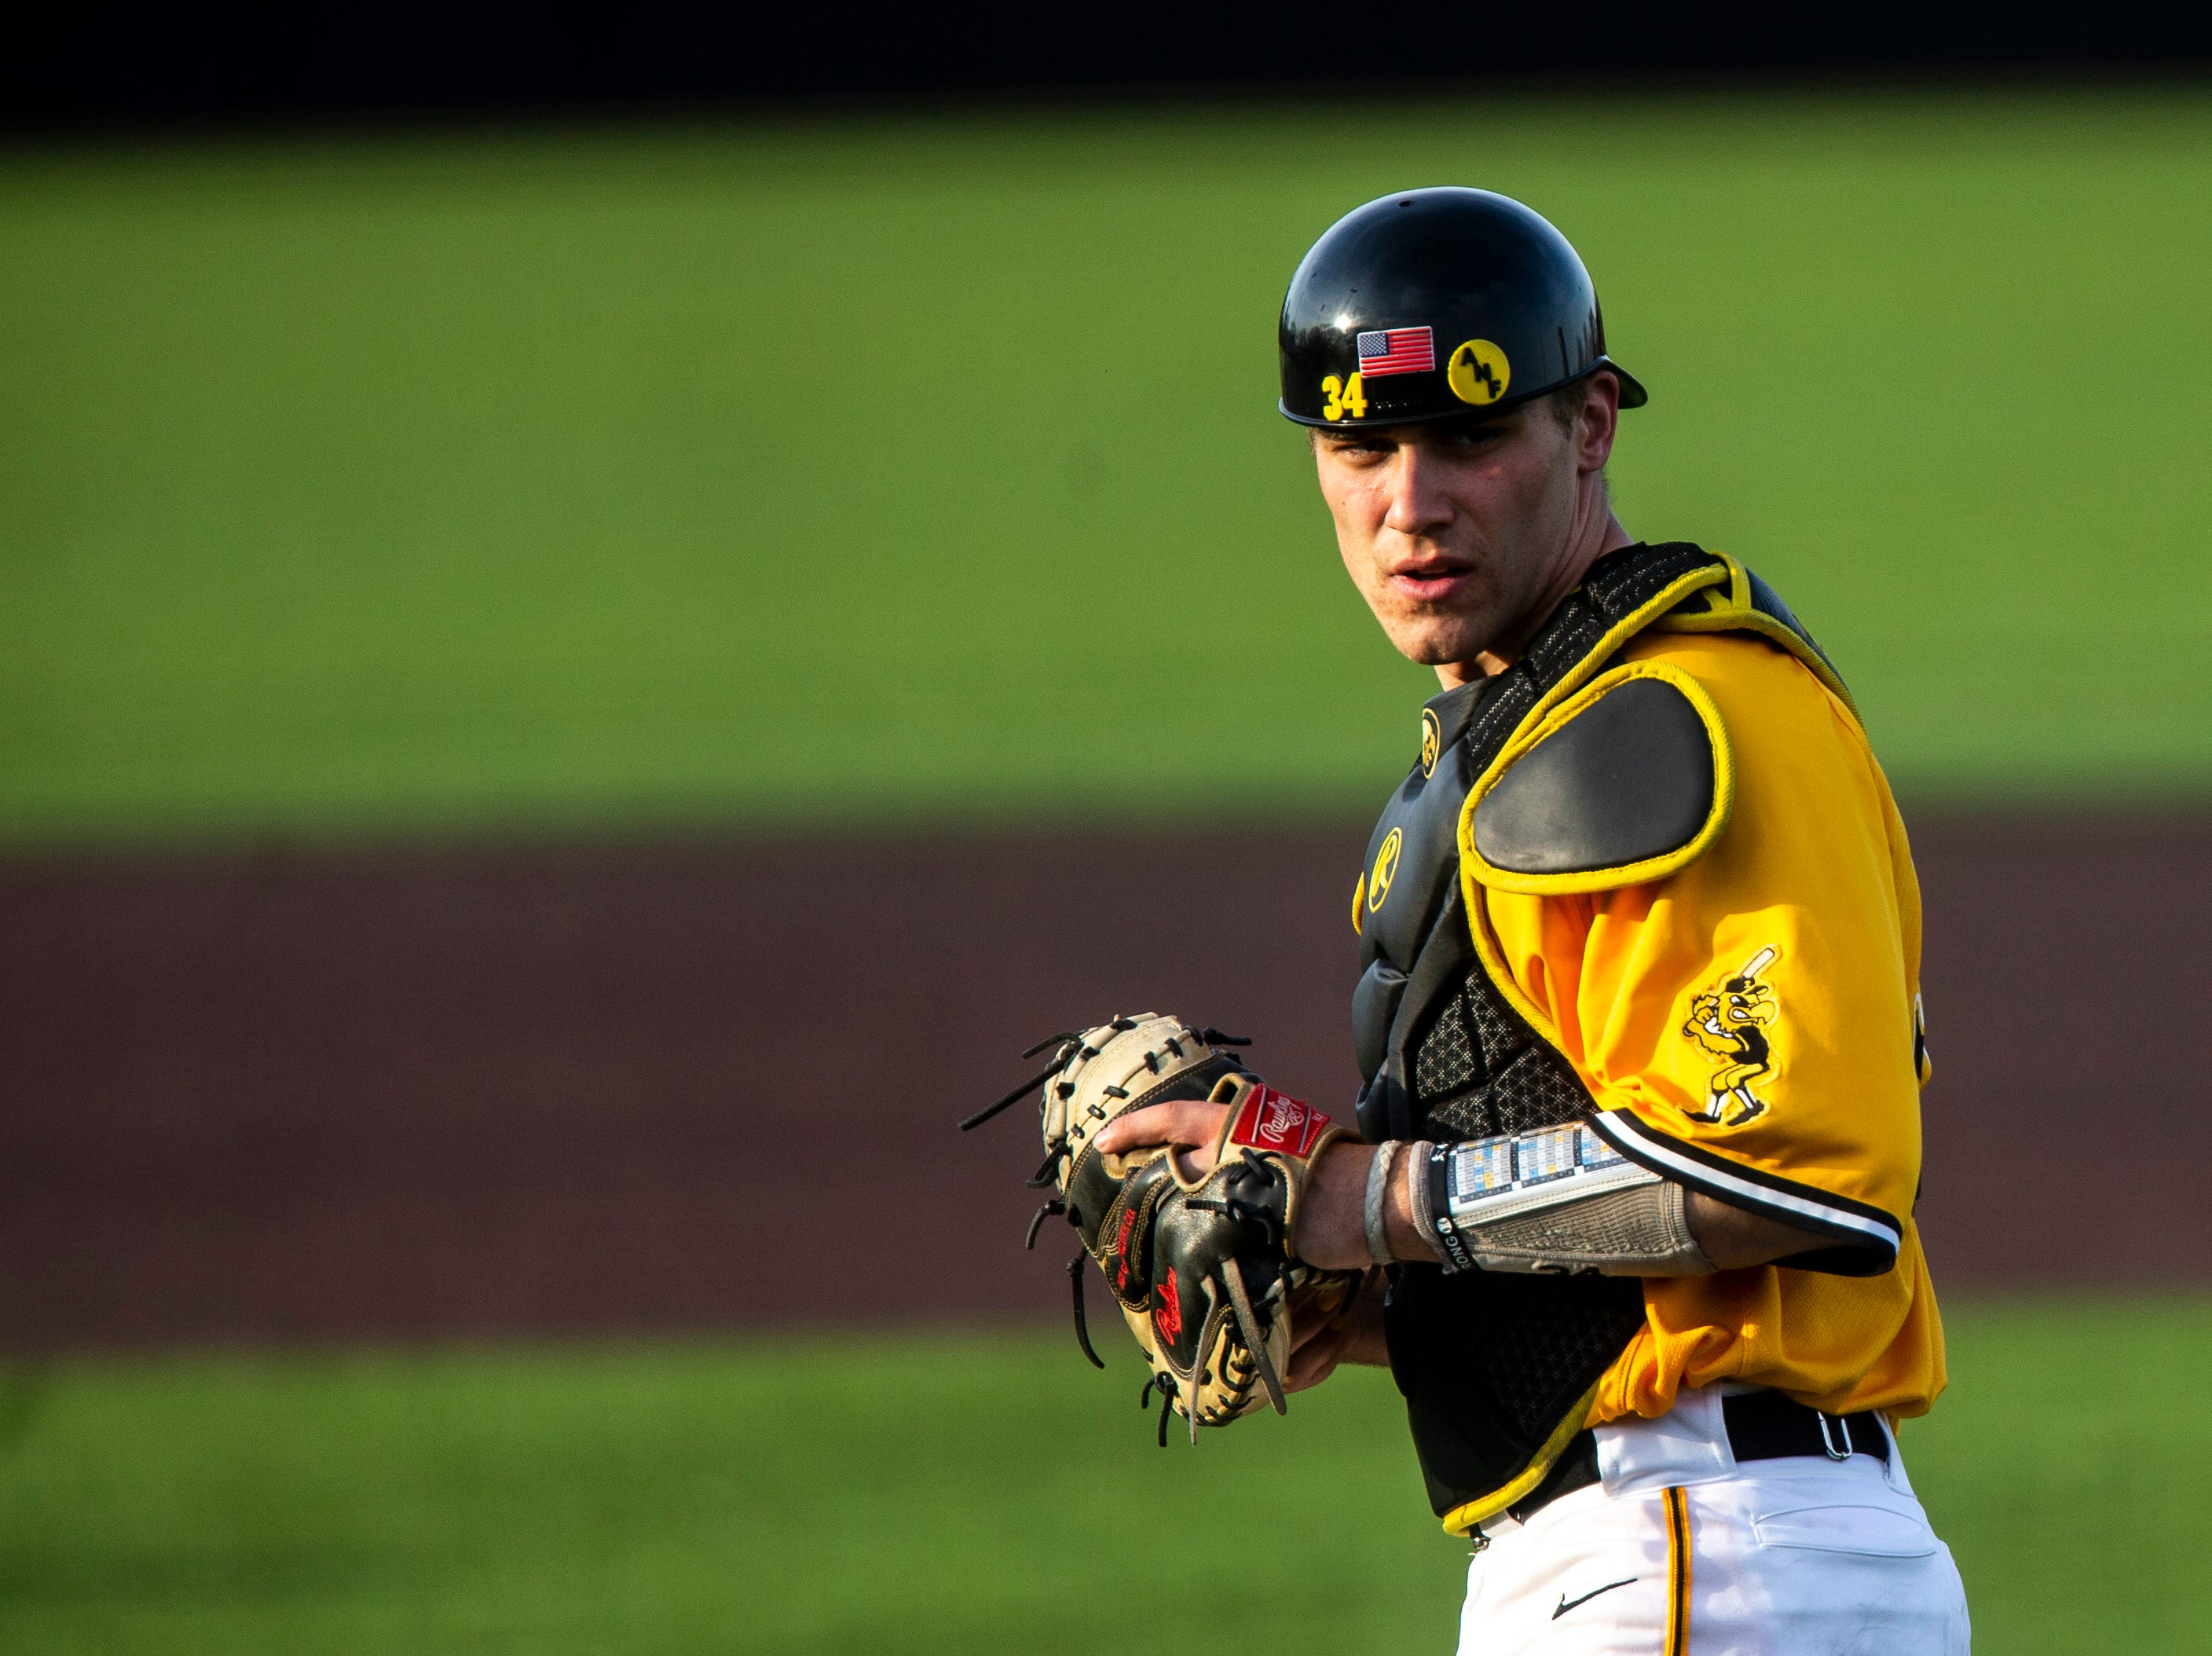 Iowa catcher Austin Martin (34) walks out to the plate during a NCAA Big Ten Conference baseball game on Saturday, April 6, 2019, at Duane Banks Field in Iowa City, Iowa.